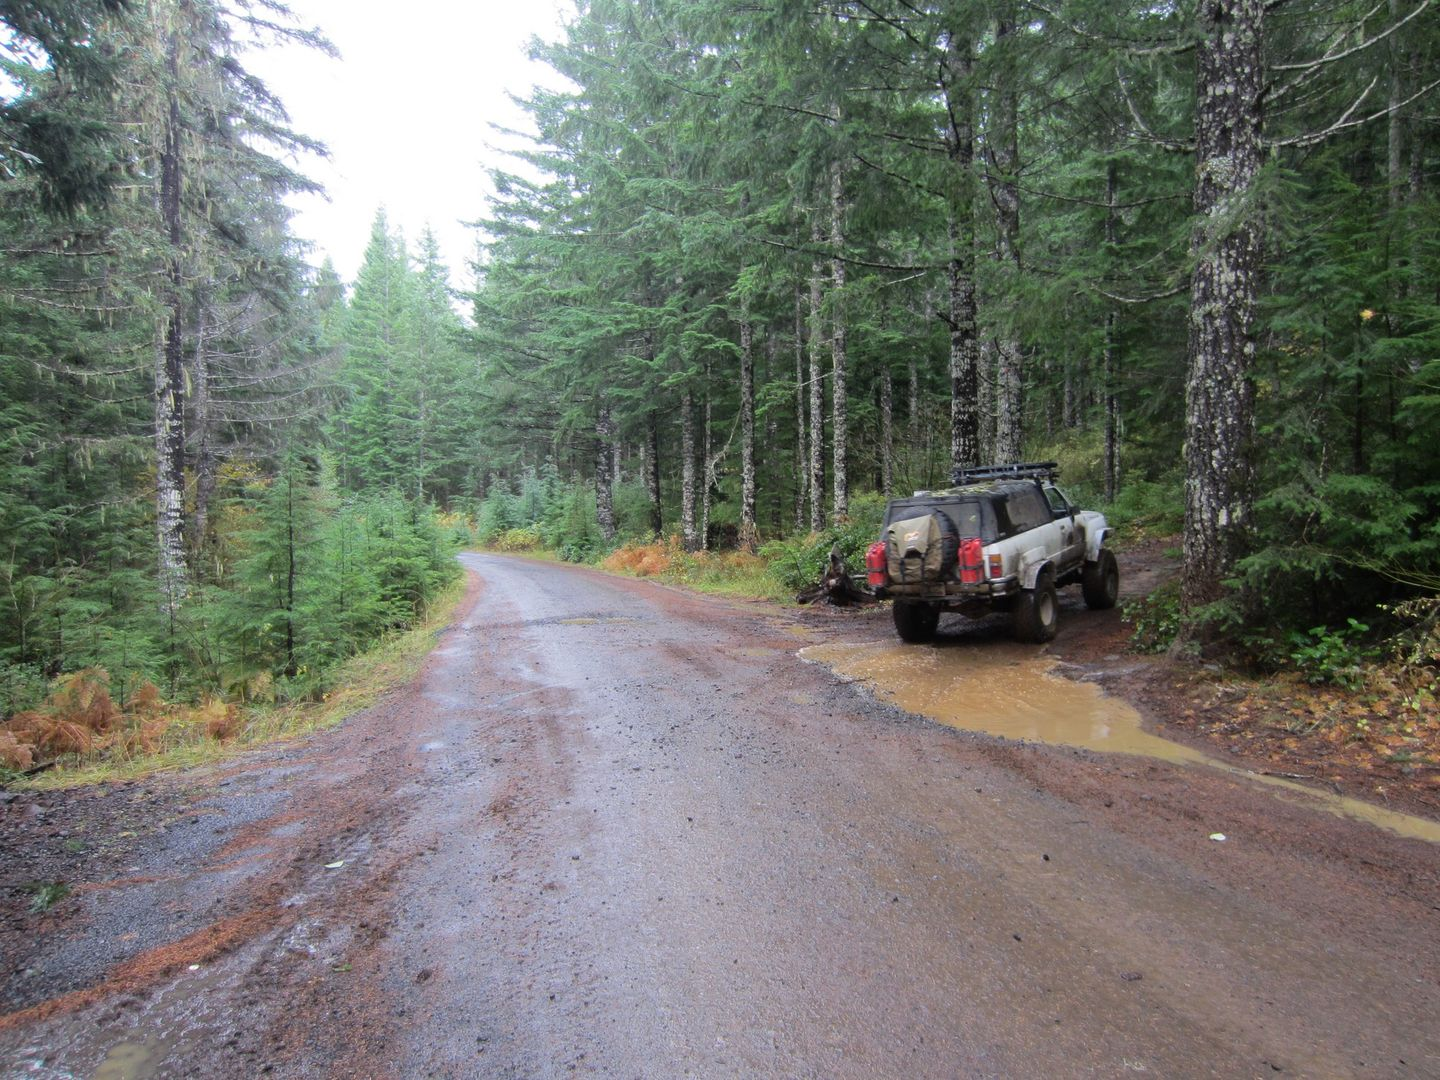 Firebreak Five / Tillamook State Forest - Waypoint 6: Go Left and Then Immediately Right Across Gravel Road